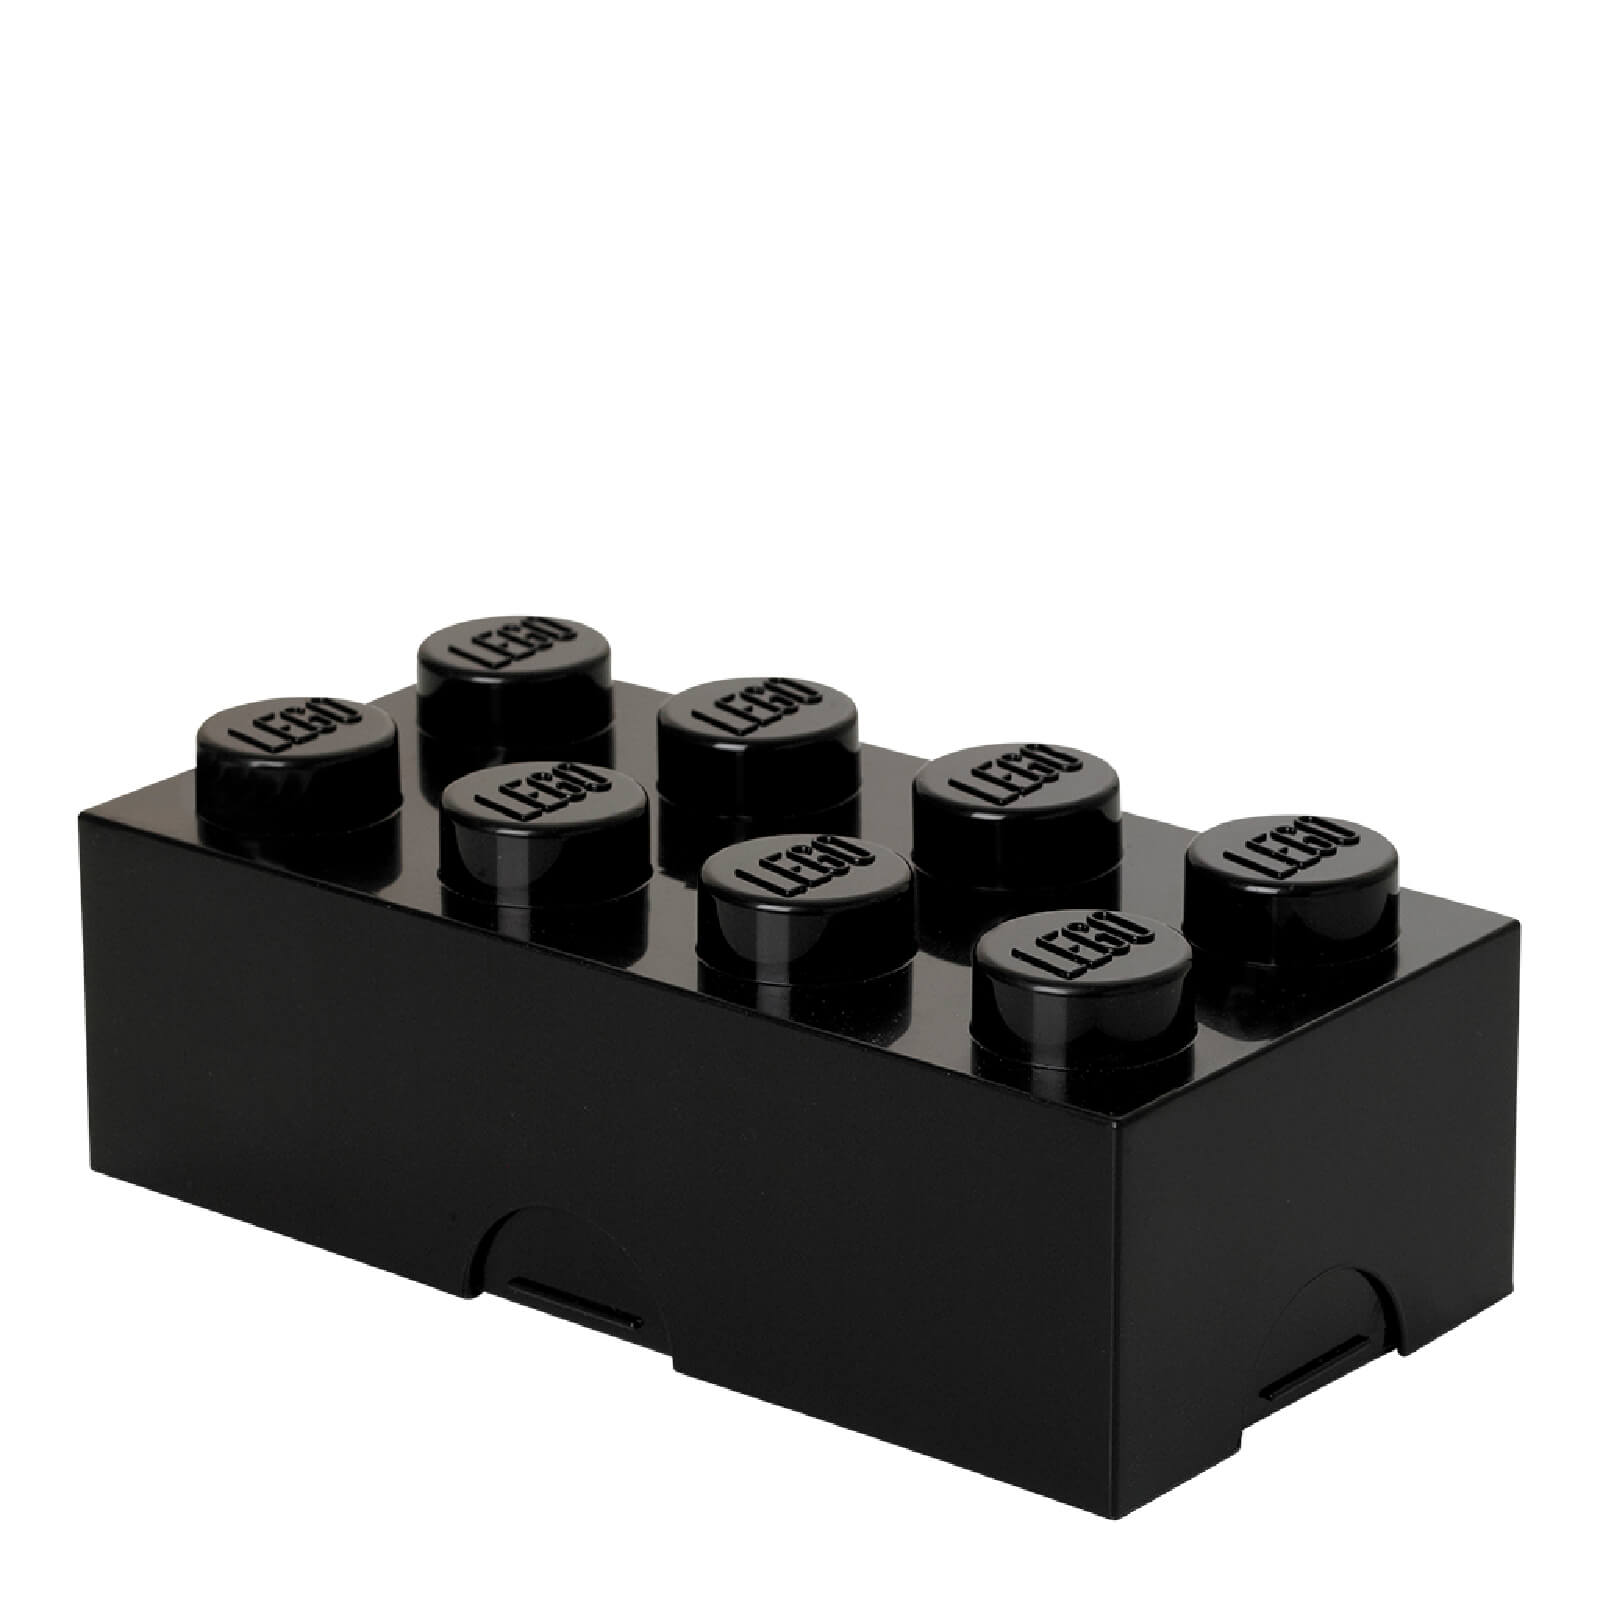 LEGO Lunch Box - Black